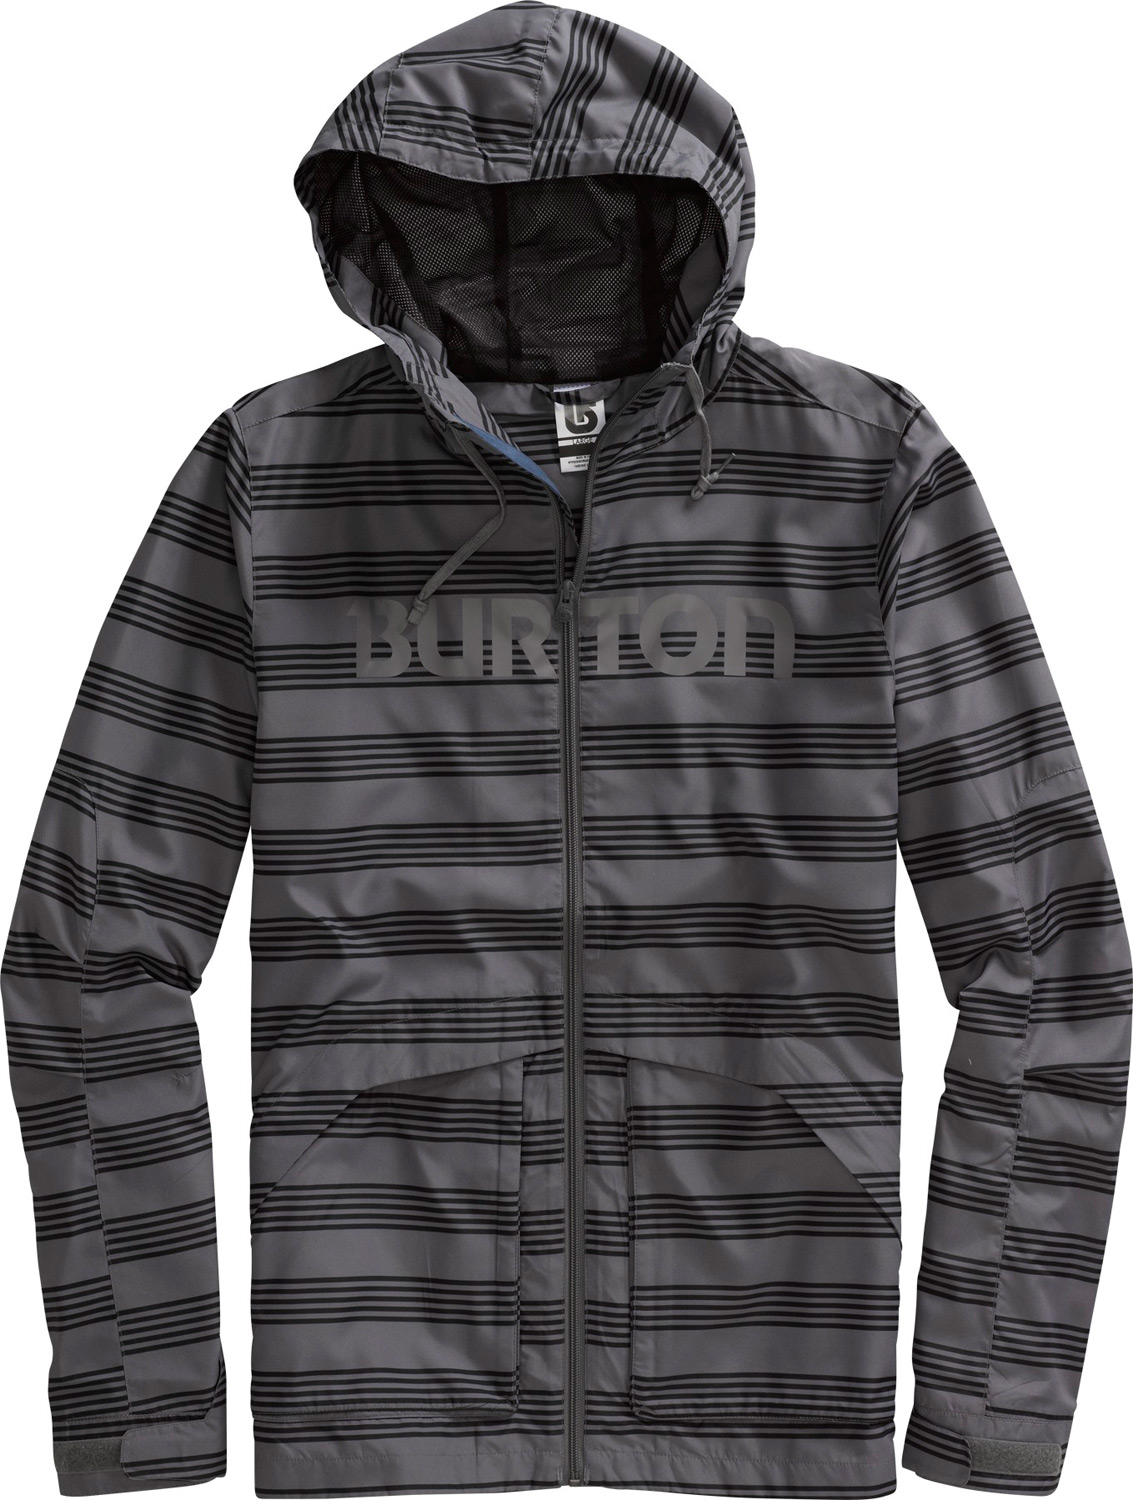 Snowboard Elemental resistance - wind or rain, a dry decision for when the weather is undecided.Key Features of the Burton Dover Jacket: 100% Micro Polyester AirTech Fabric with DRYRIDE Mist-Defy Street Fit Microcell Mesh Lining Screen Printed Logo at Chest - $39.16